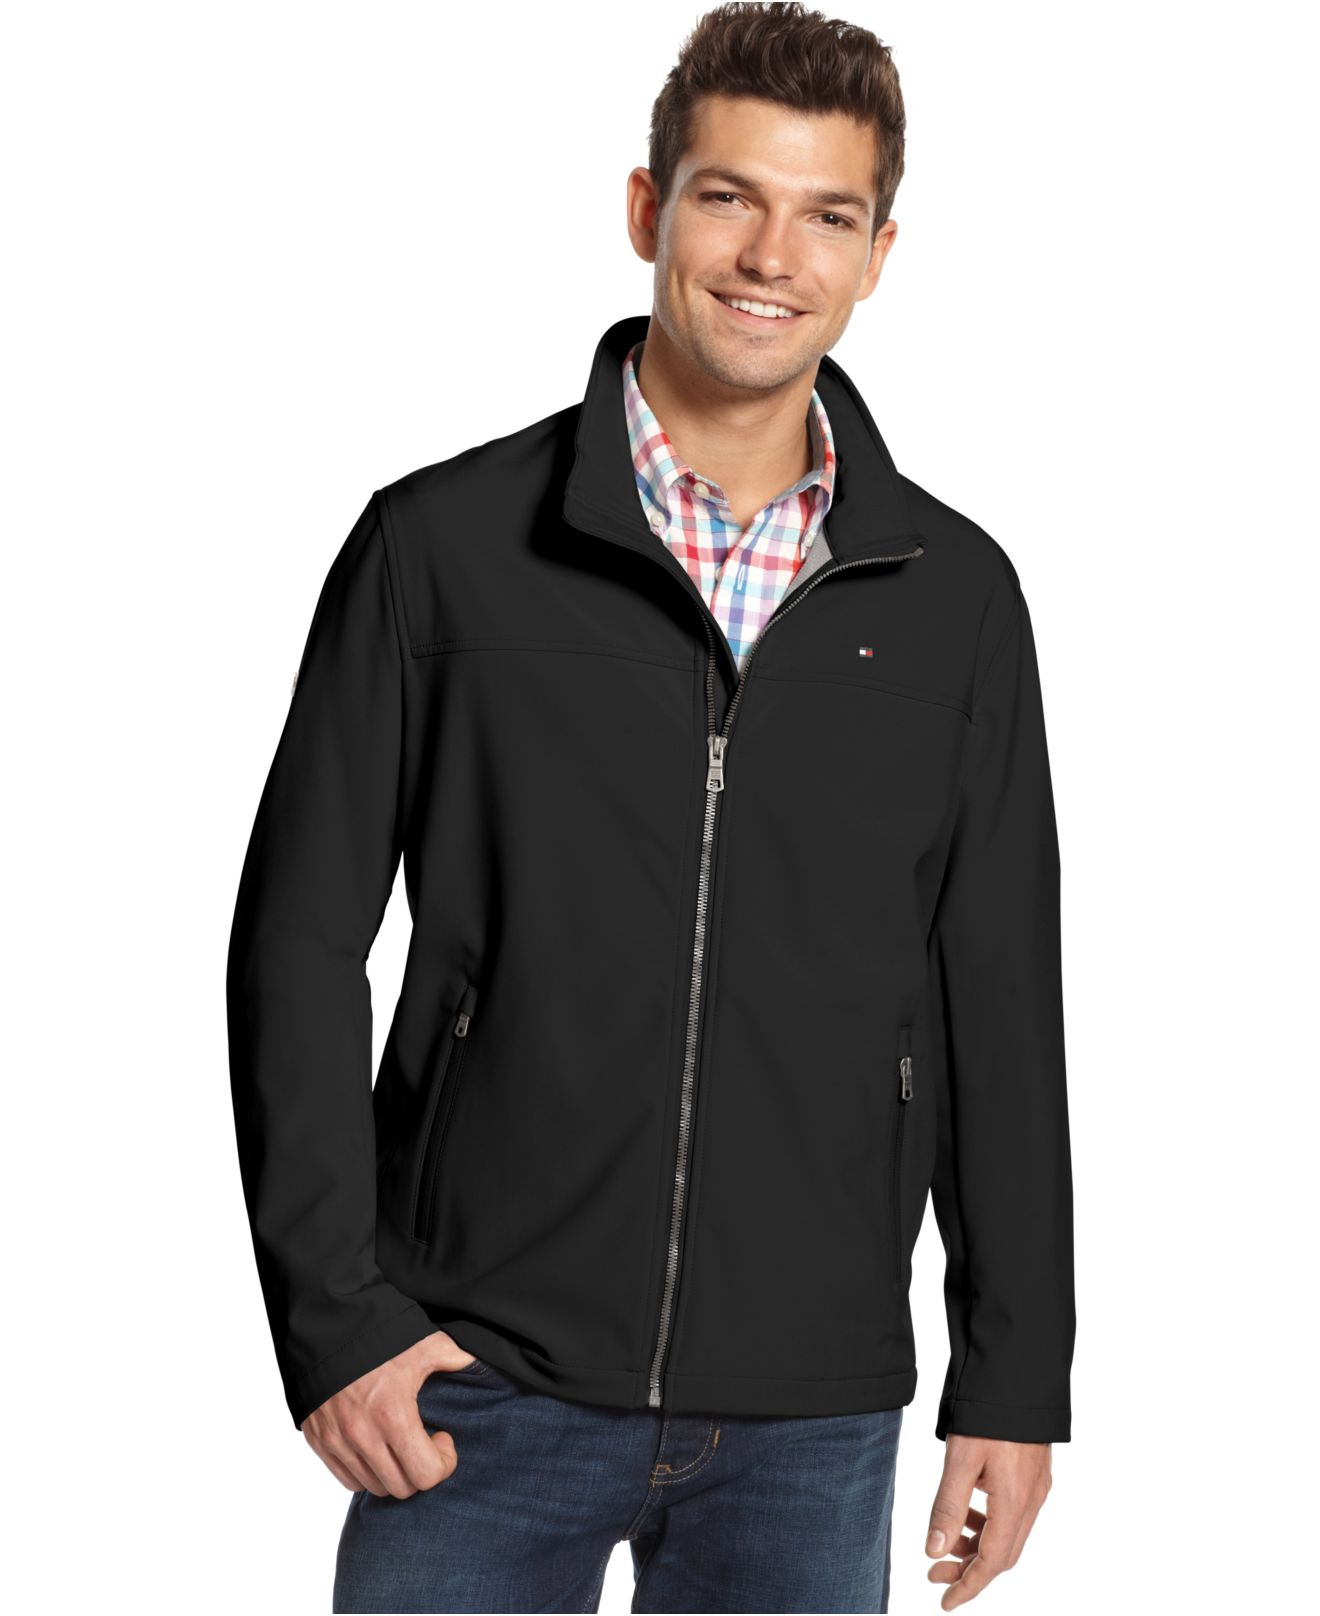 lyst tommy hilfiger soft shell jacket in black for men. Black Bedroom Furniture Sets. Home Design Ideas